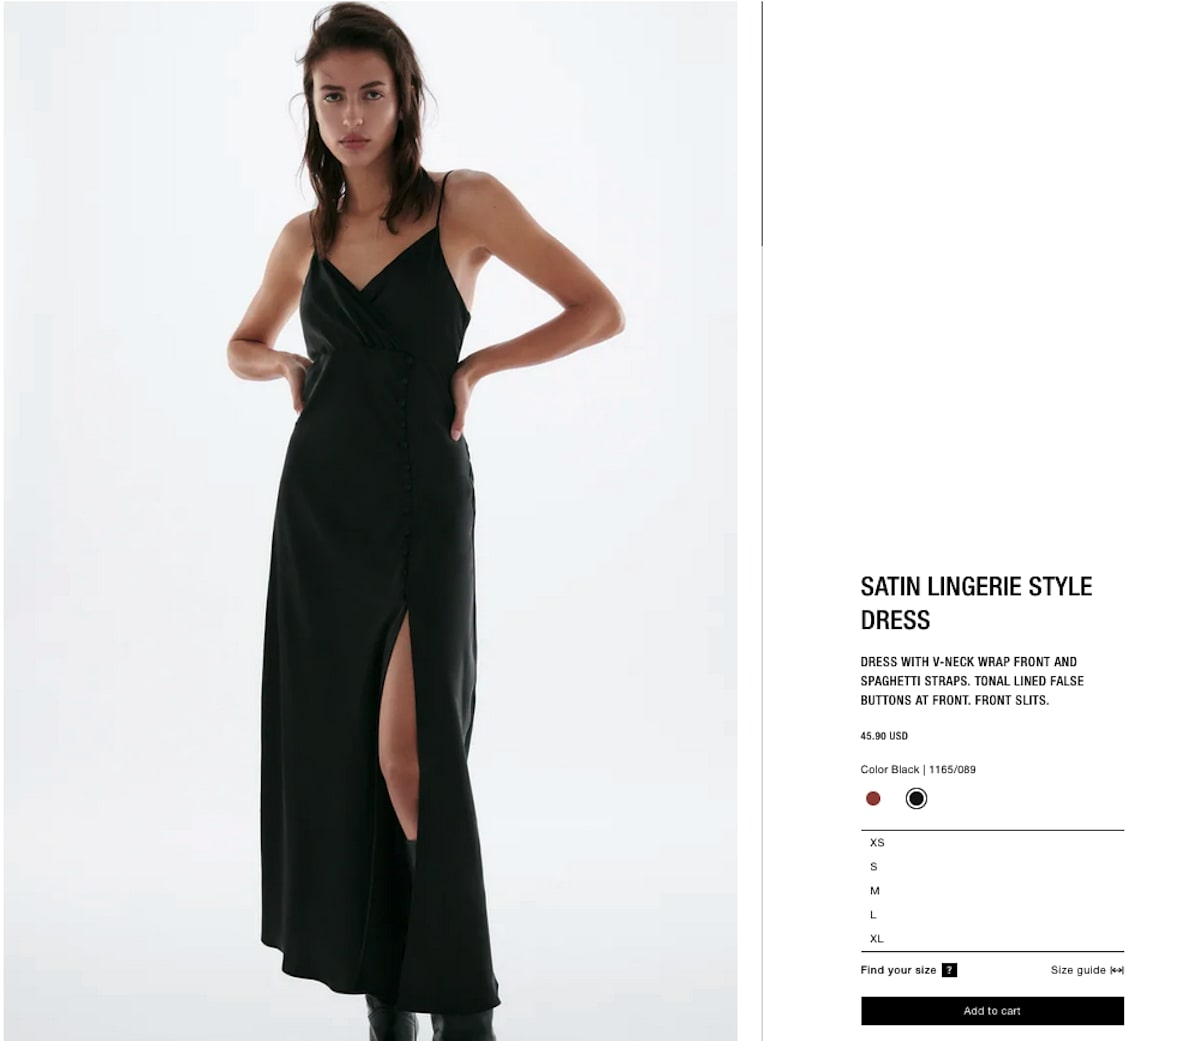 Bachelorette party outfits: Satin Lingerie-Style Dress